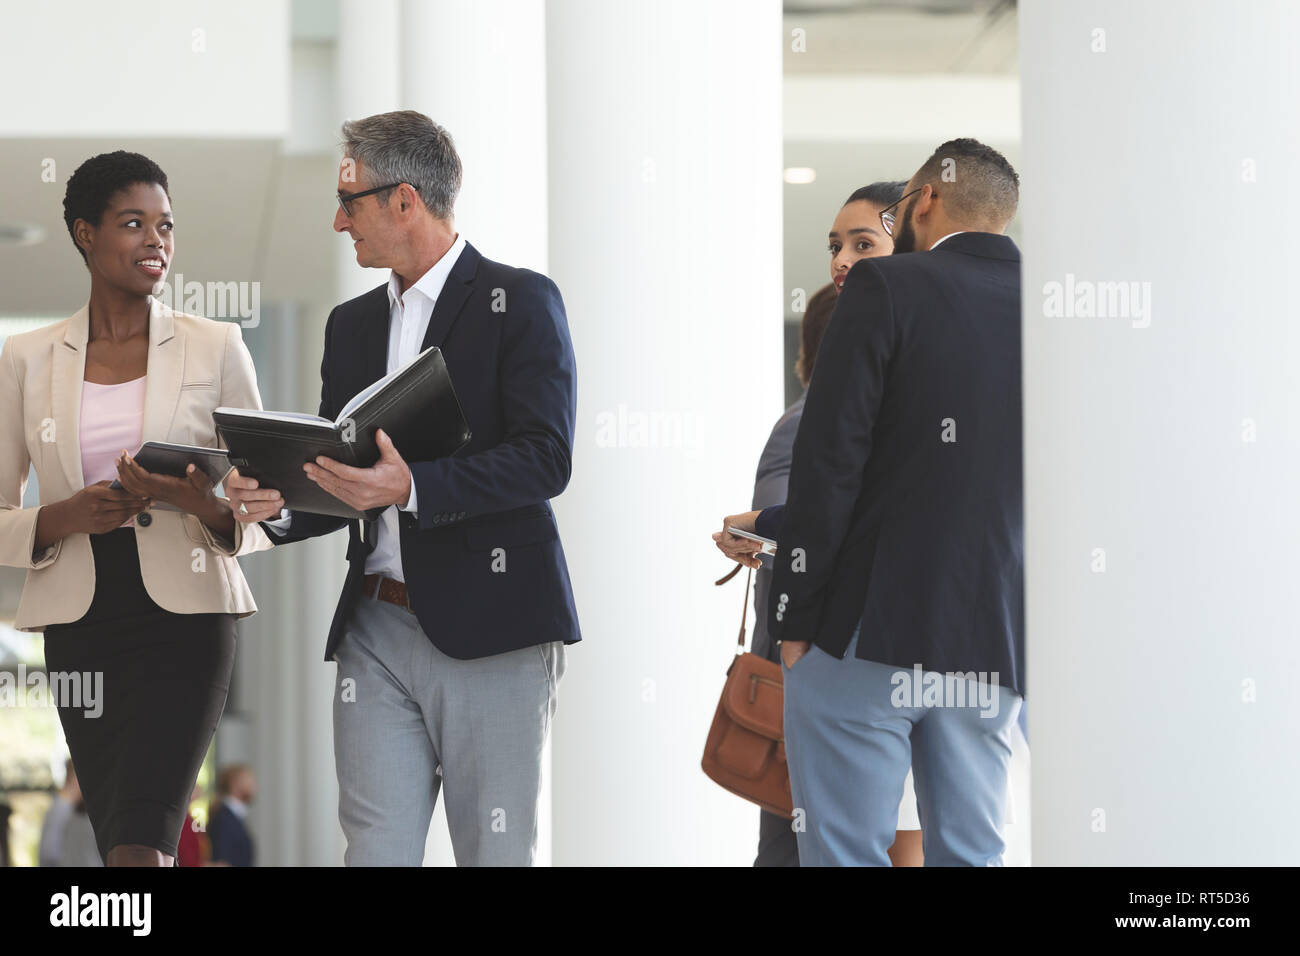 Diverse business people interacting with each other while walking in lobby office Stock Photo